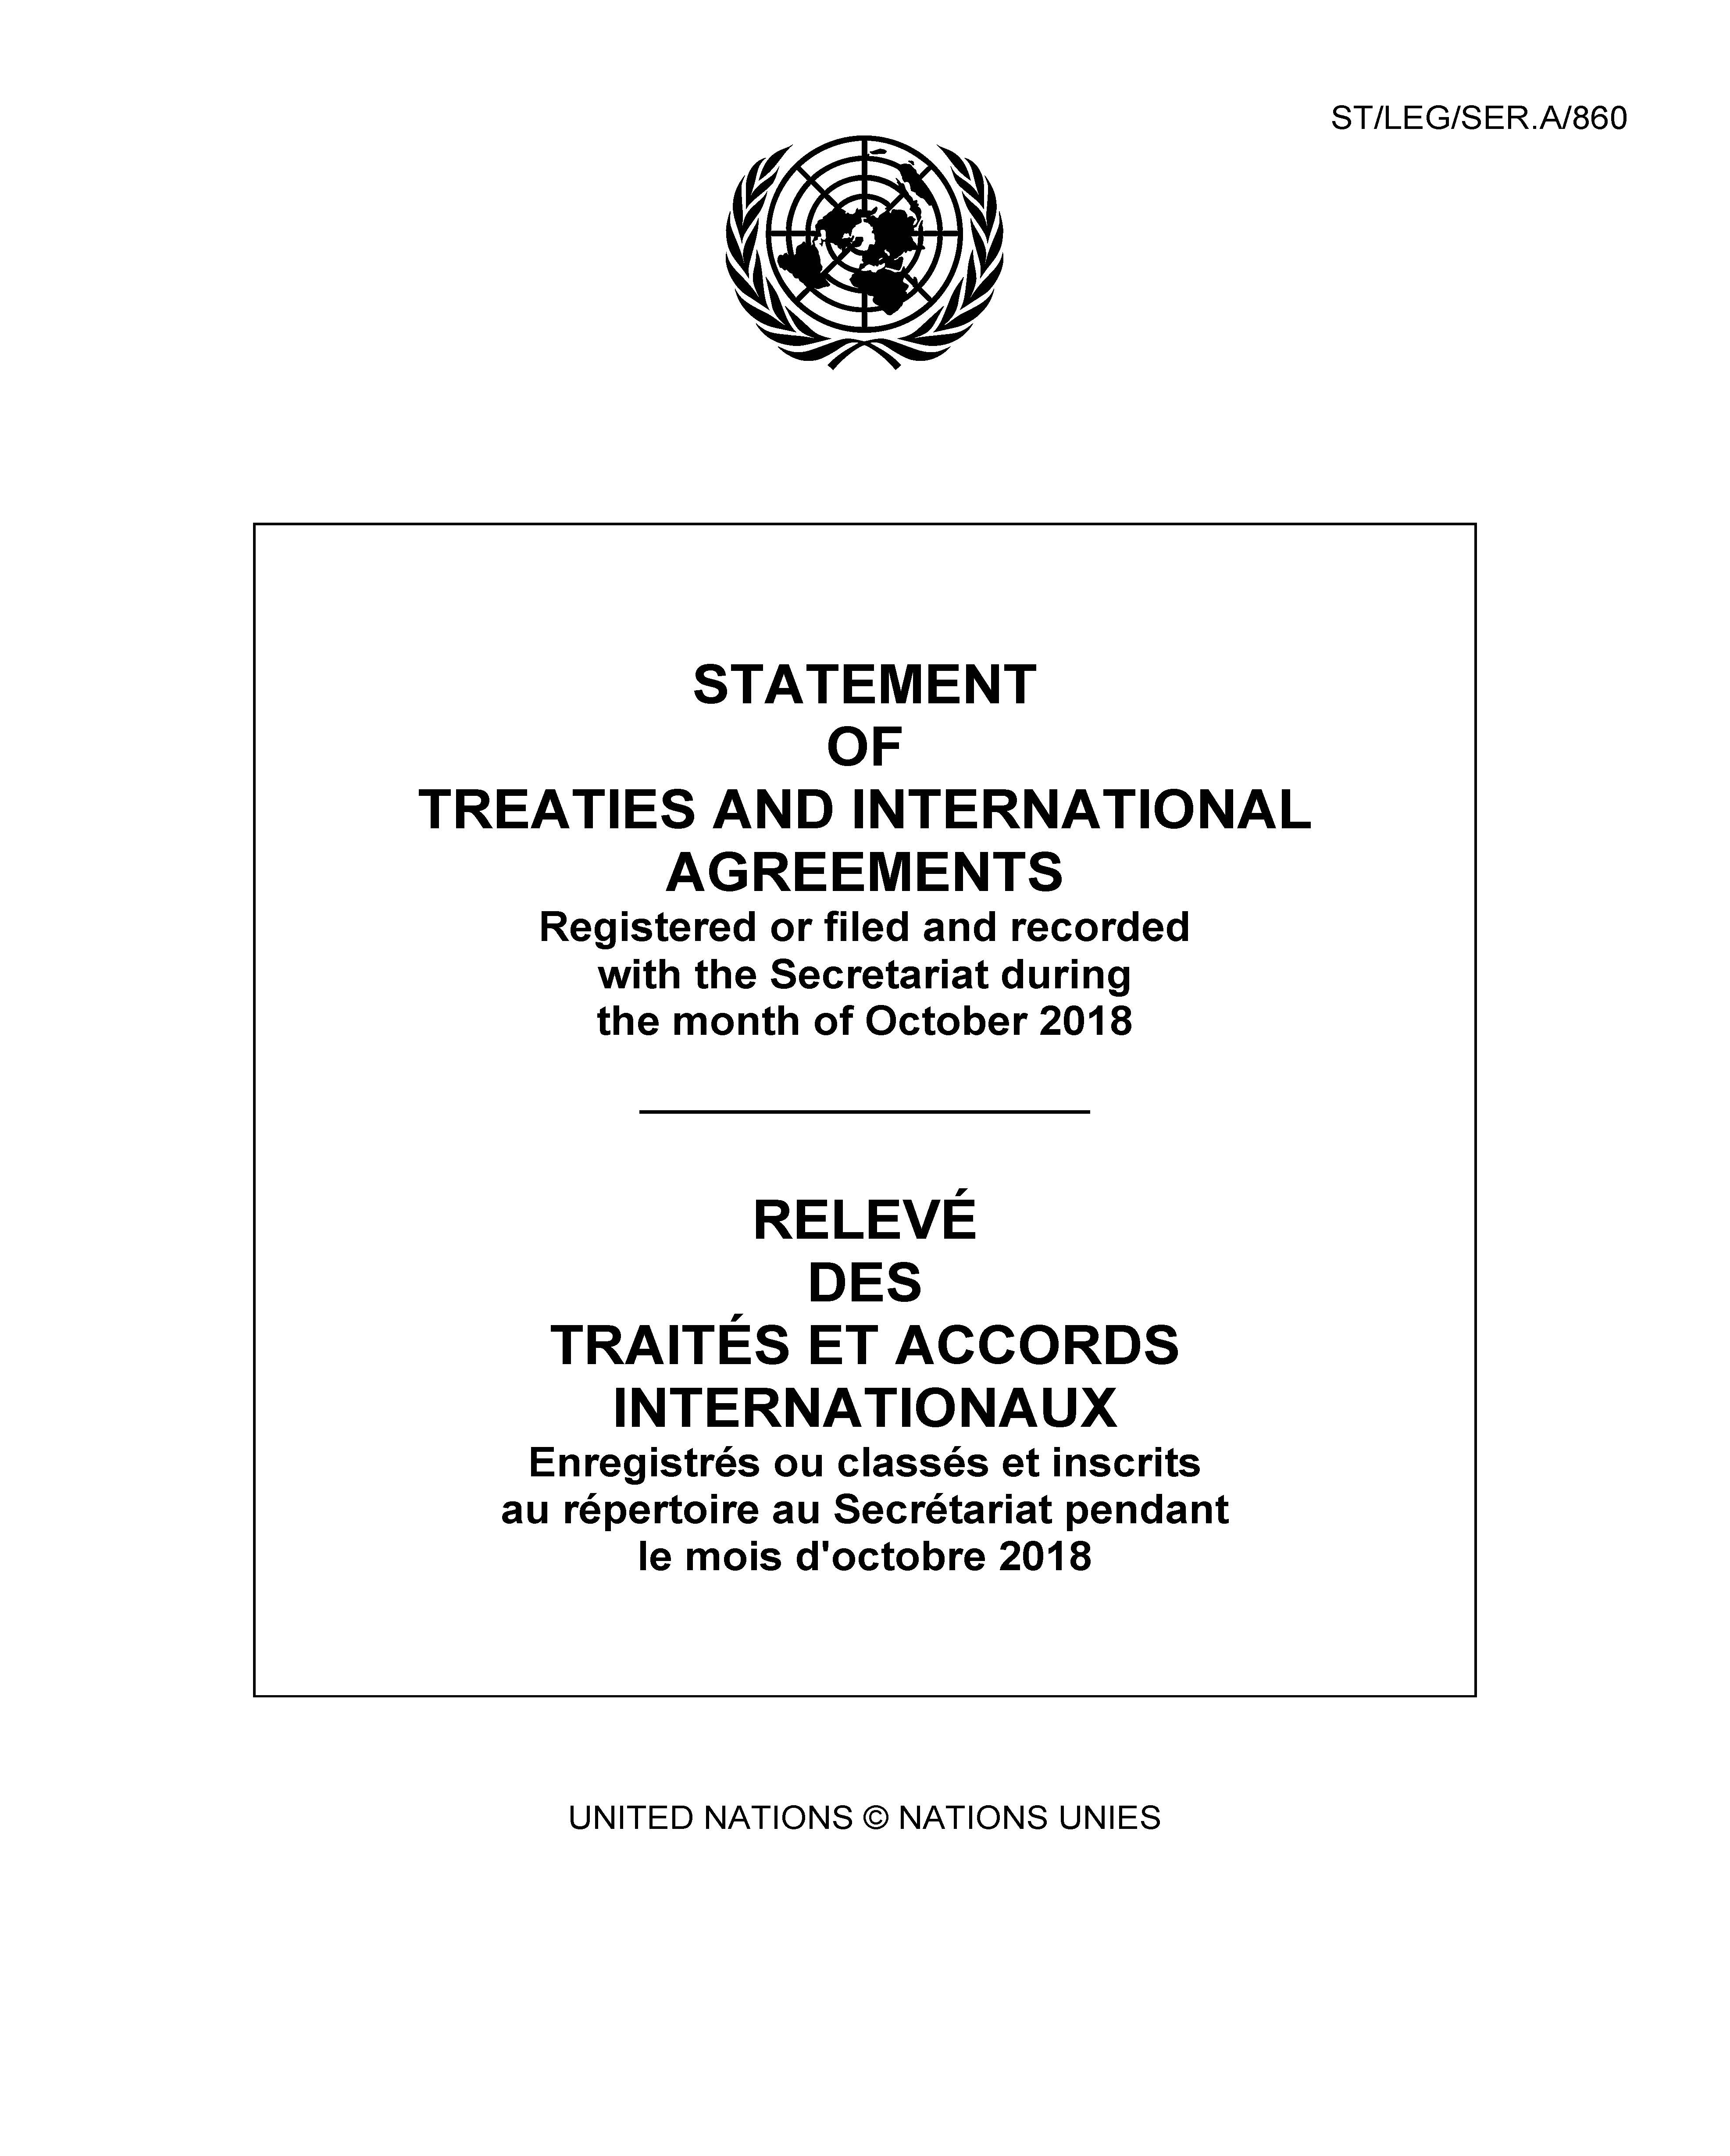 STATEMENT OF TREATIES OCT 2018